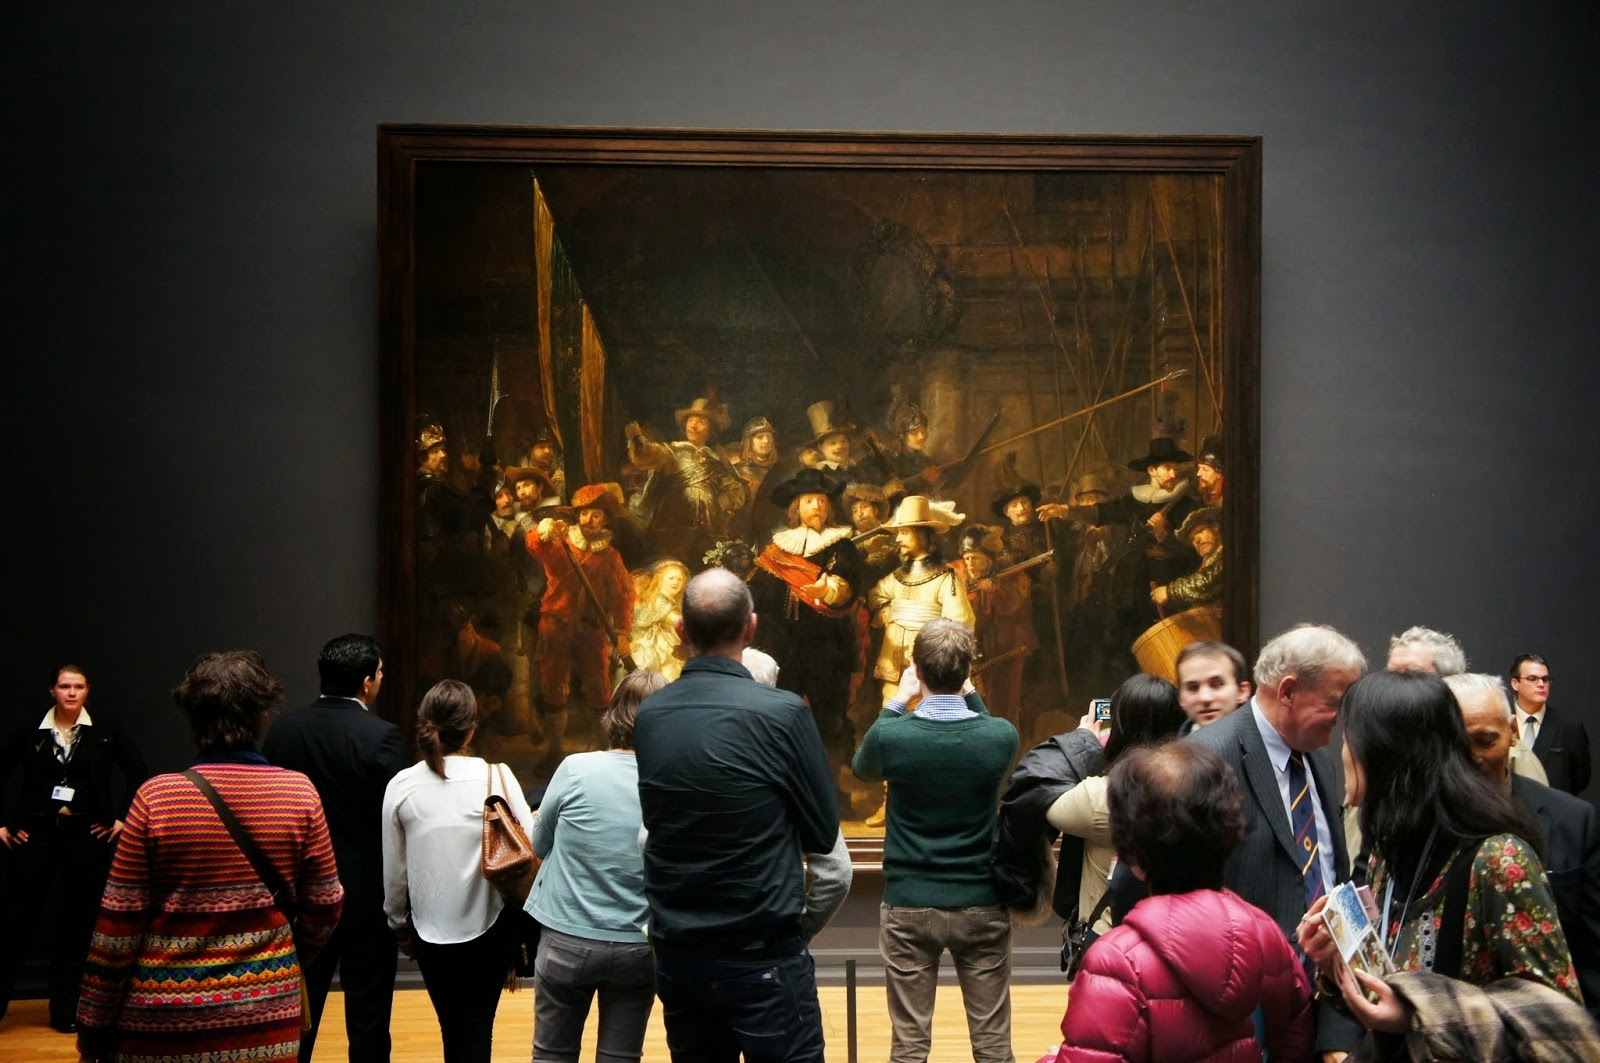 Amsterdam - Night Watch being watched by patrons at the Rijksmuseum